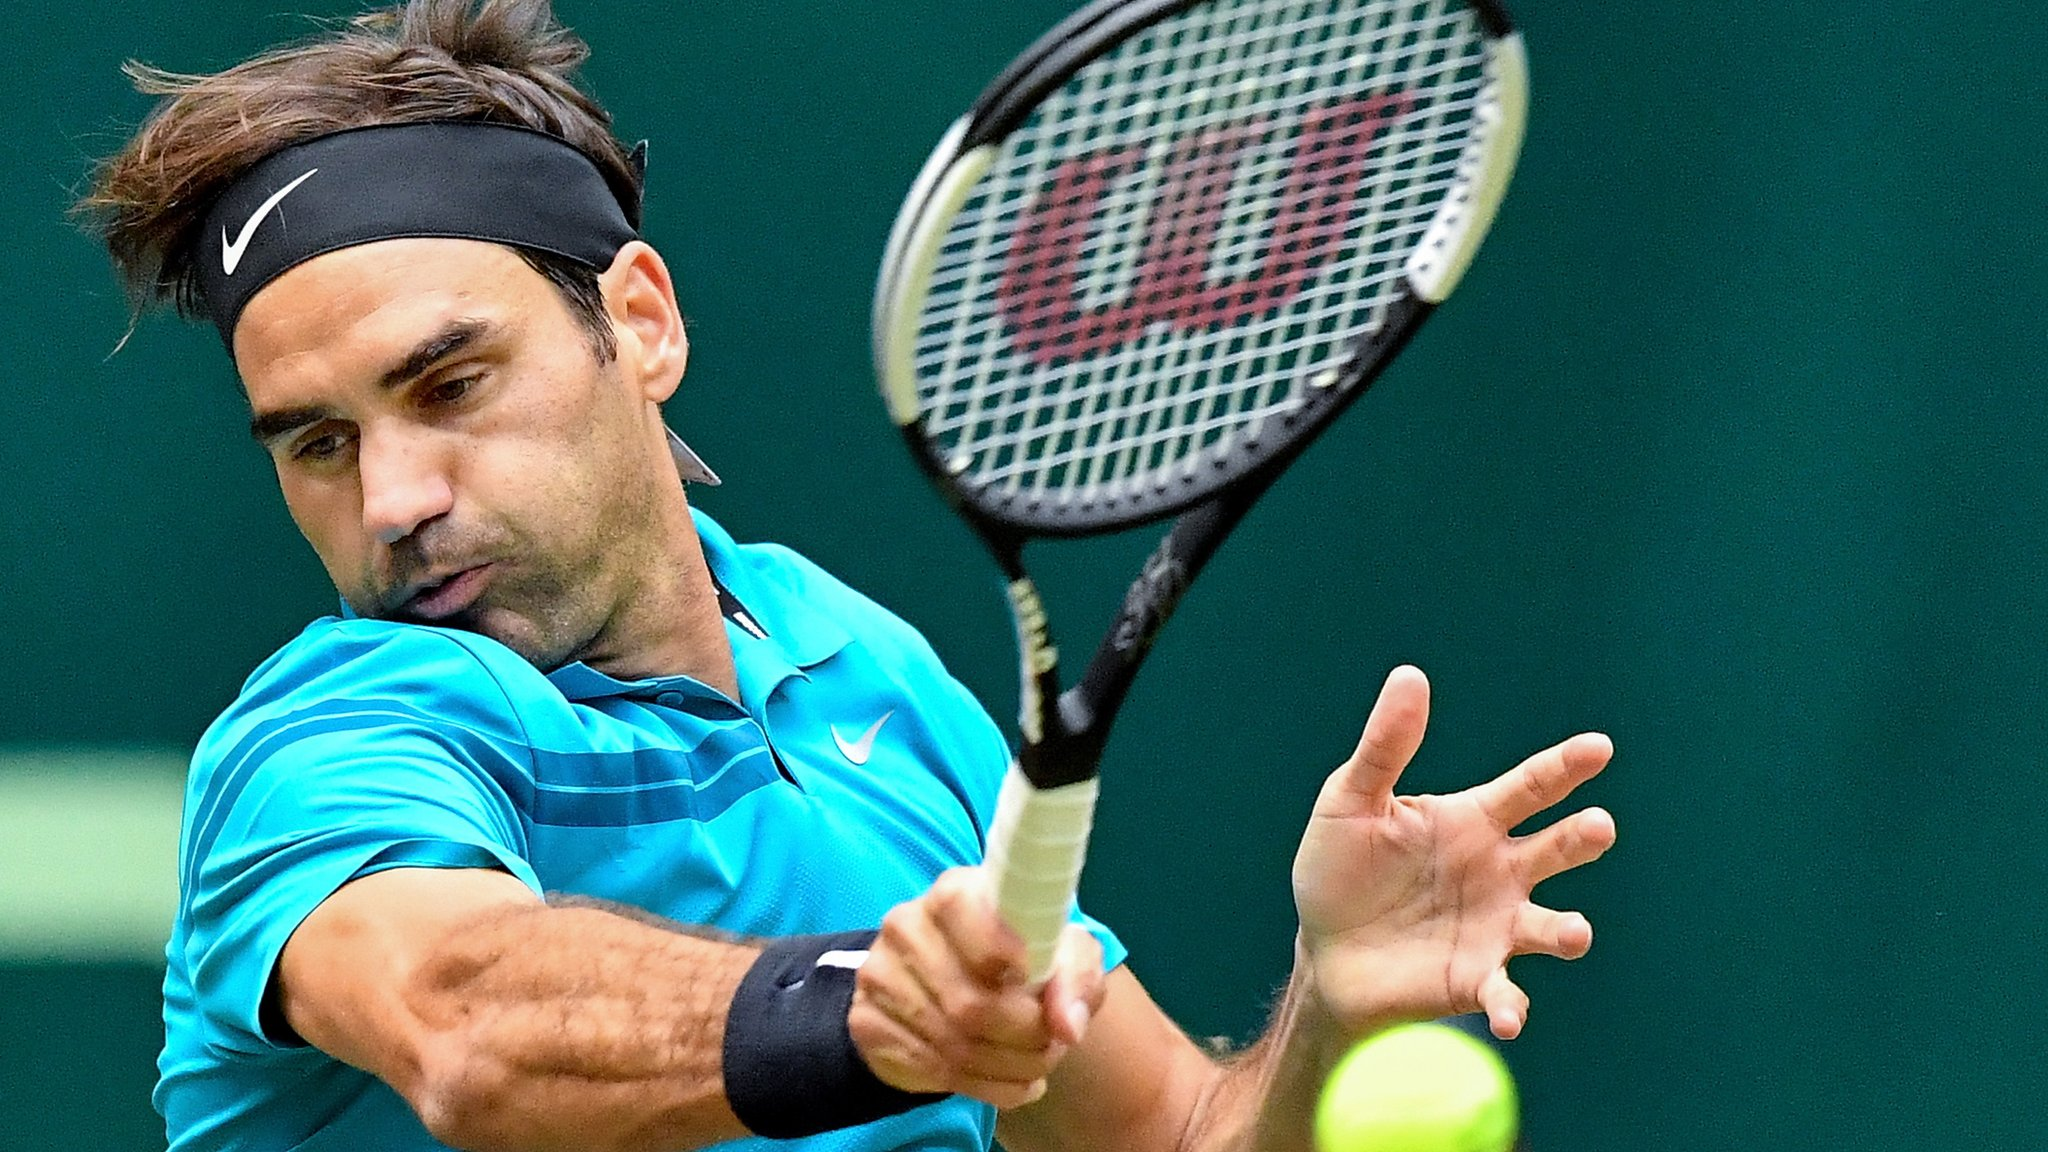 Federer saves two match points to advance in Halle